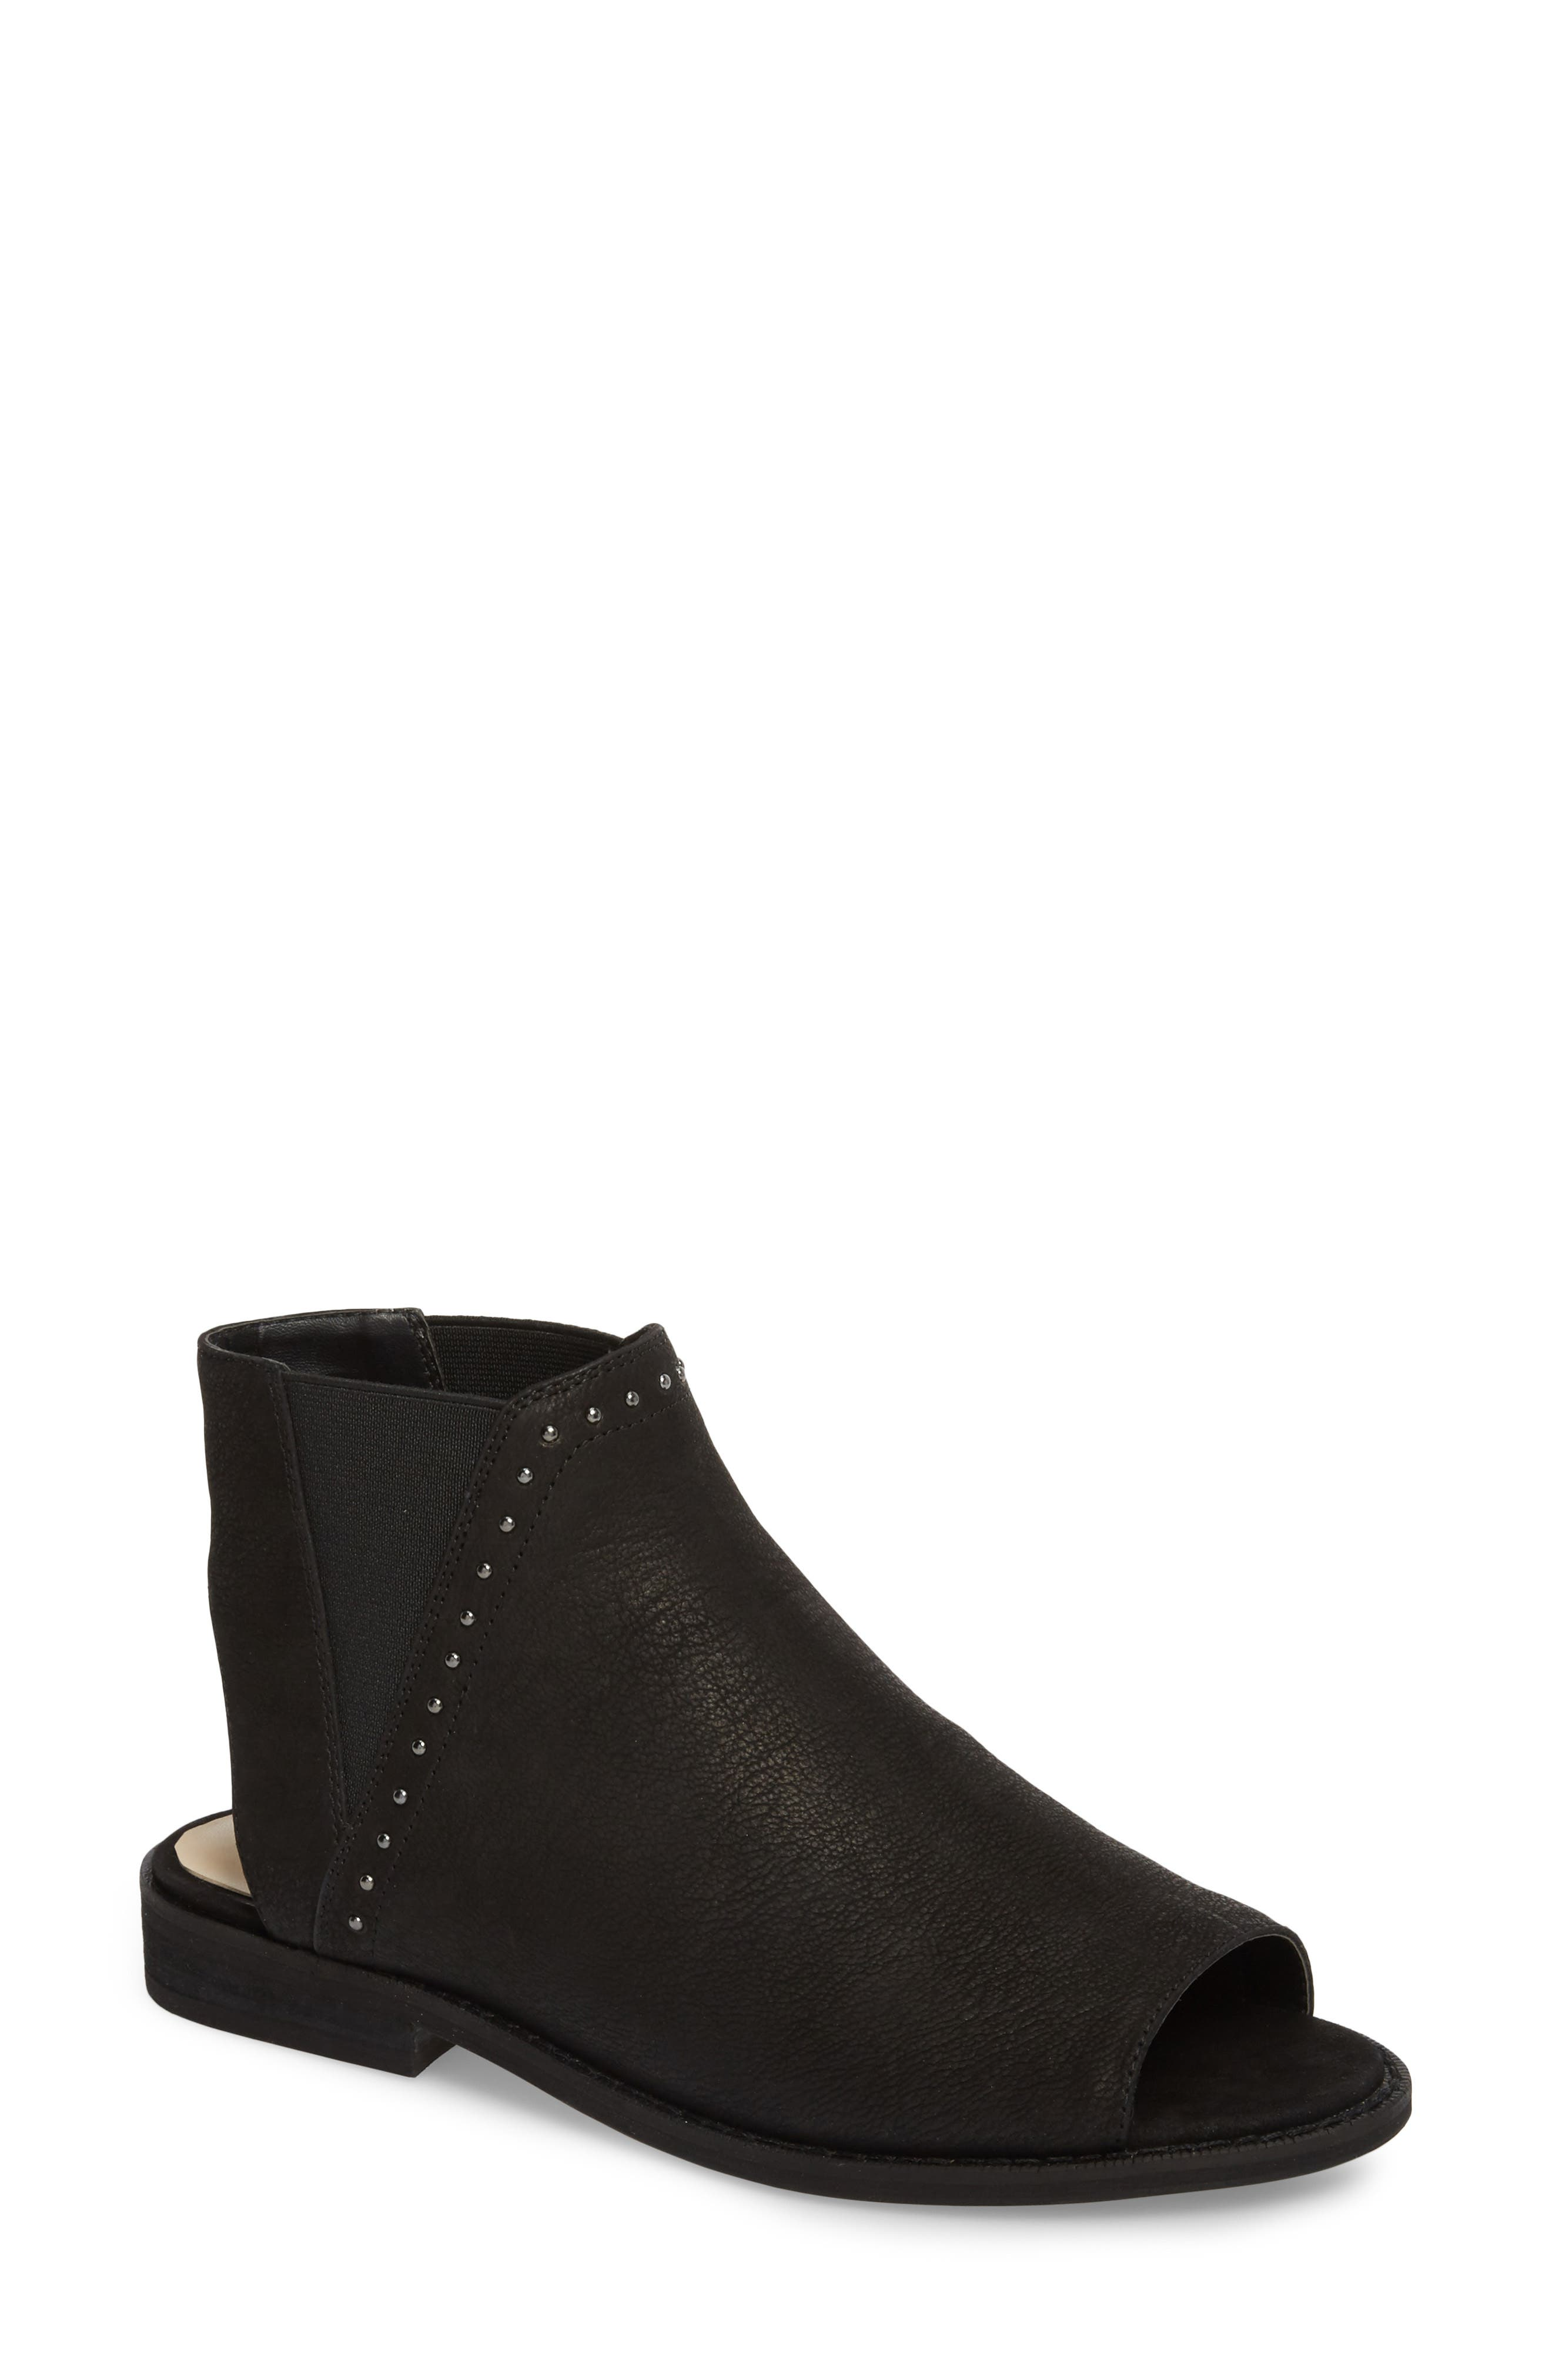 SOLE SOCIETY, Birty Bootie, Main thumbnail 1, color, BLACK